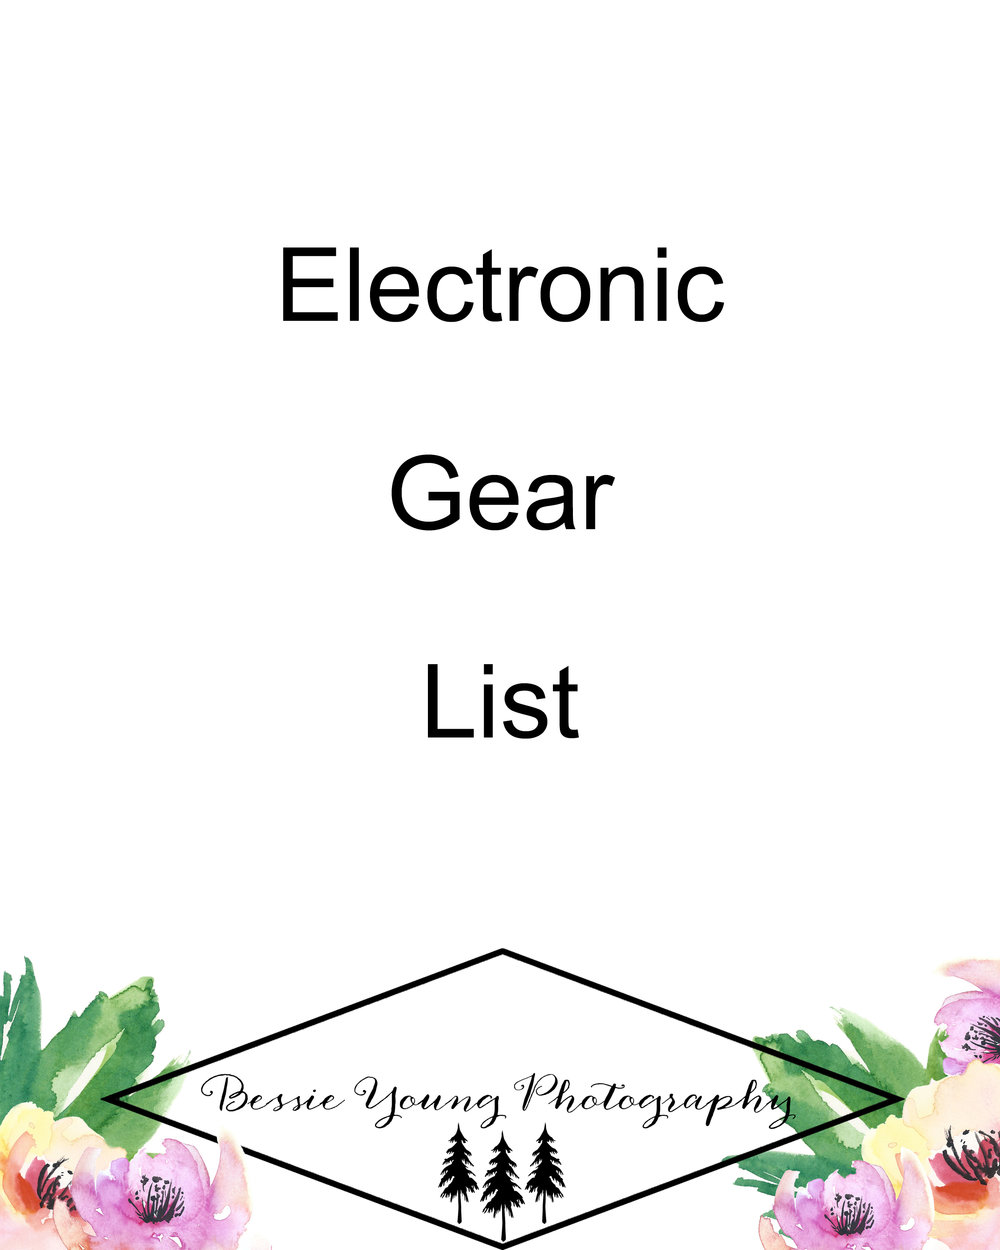 Electronic Gear List